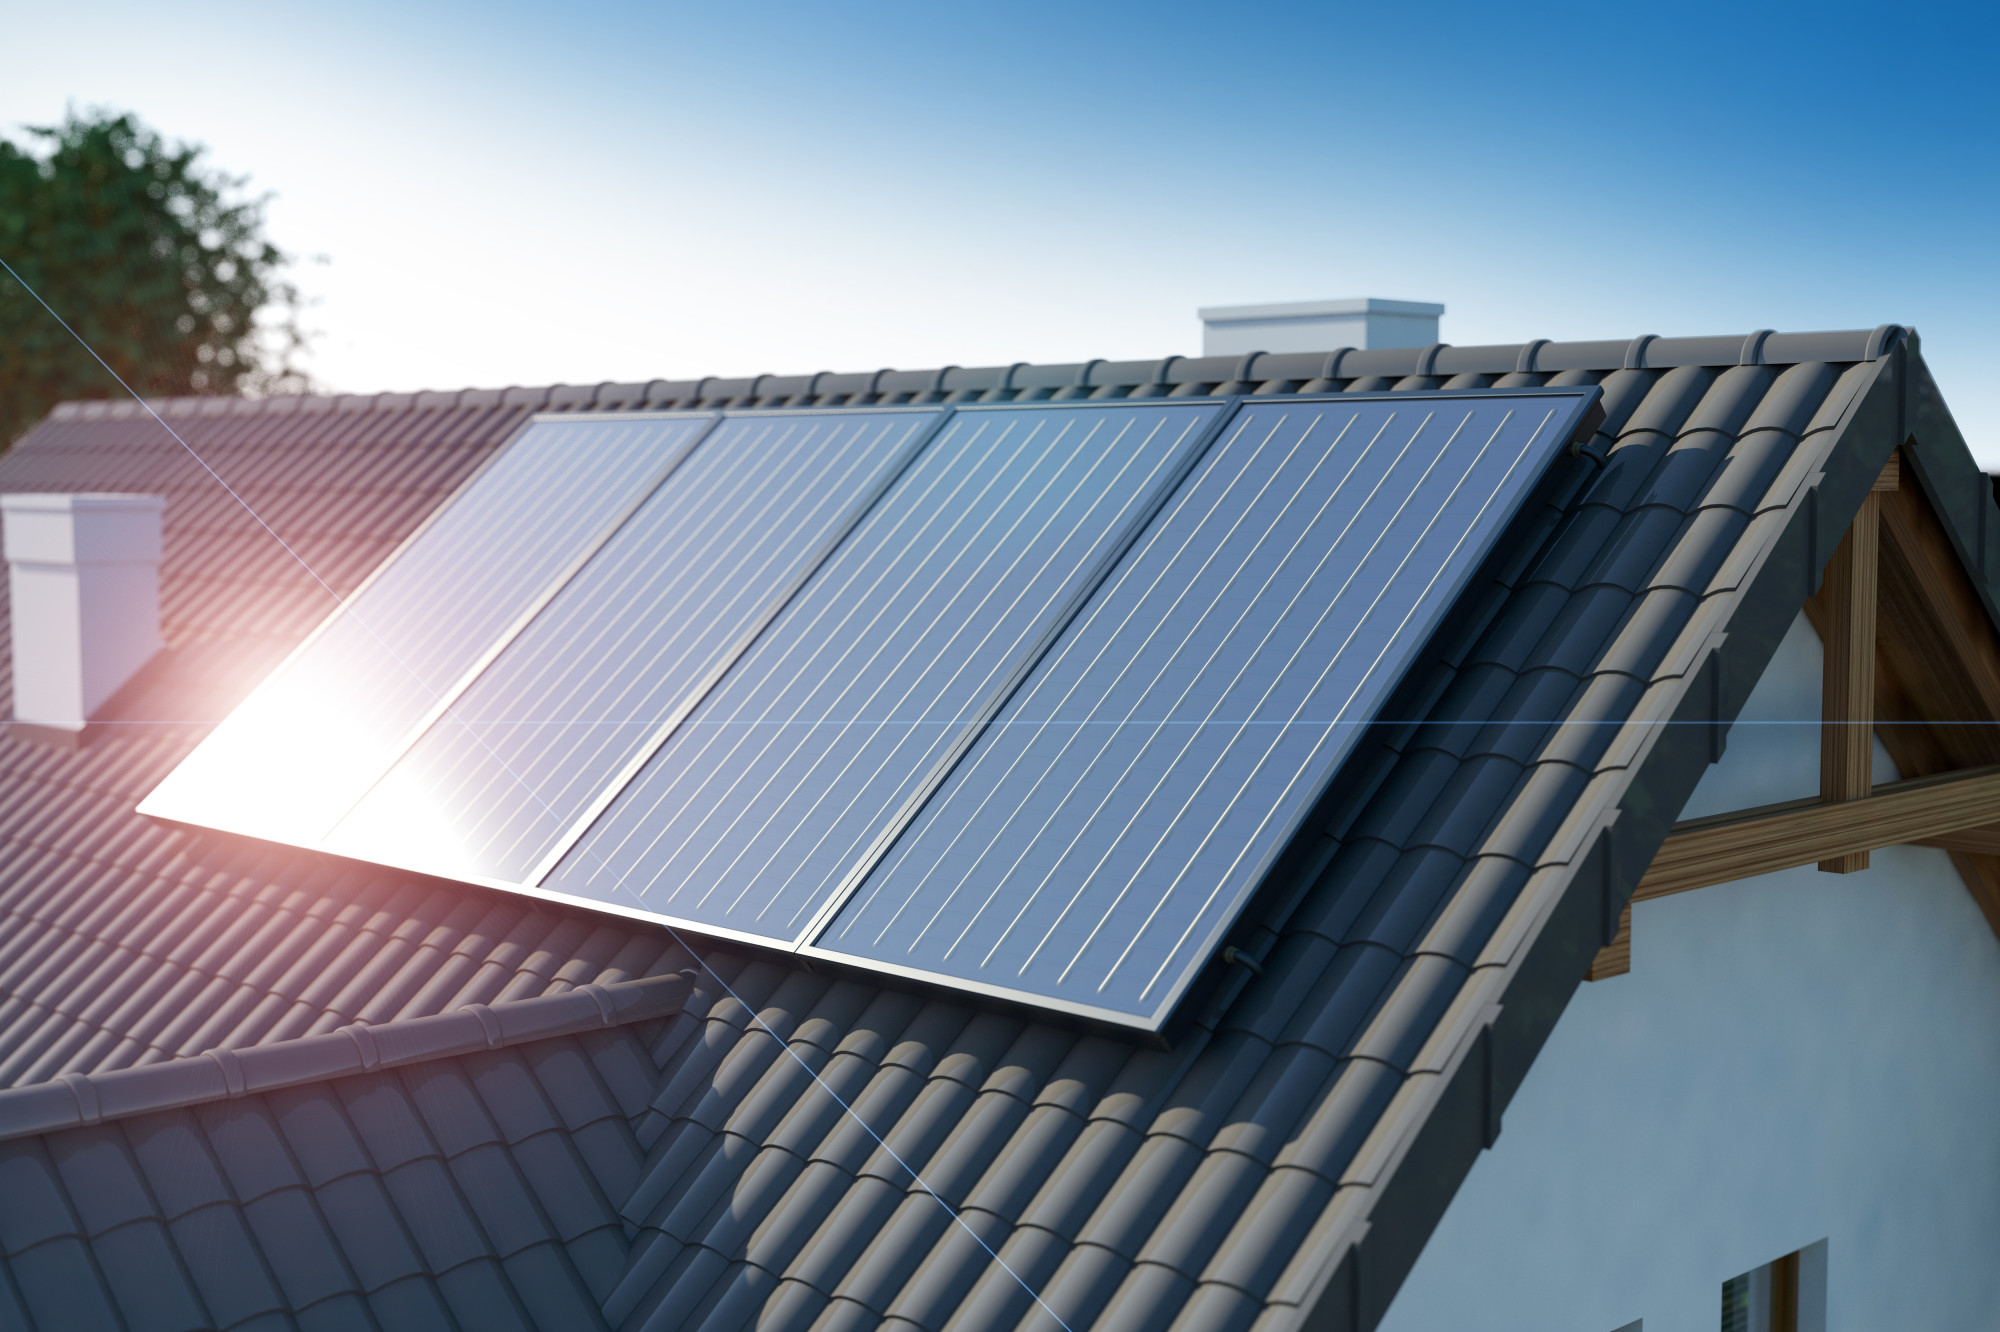 3 Common Uses of Solar Energy in and Around the Home